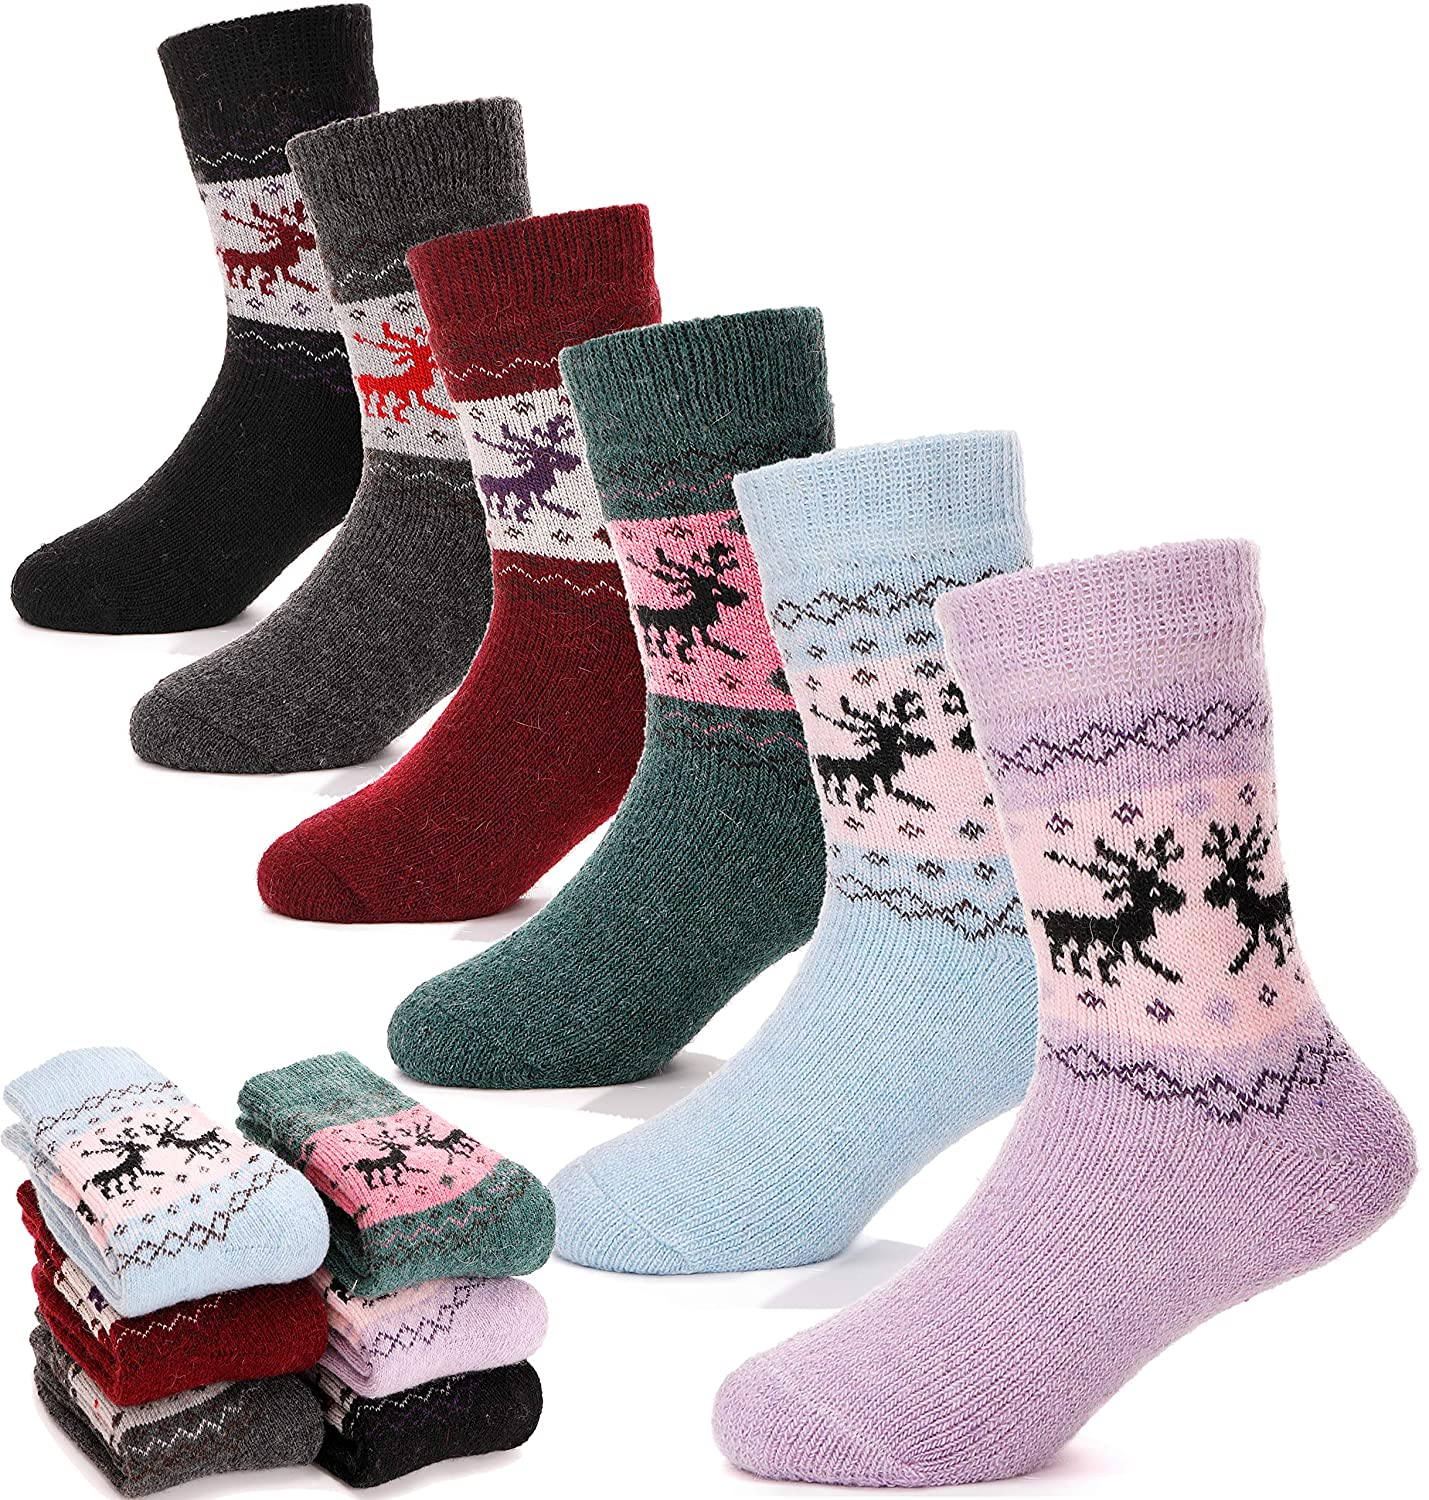 Children Wool Socks For Boy Girl Kids Toddler Thick Thermal Warm Cotton Winter Crew Socks